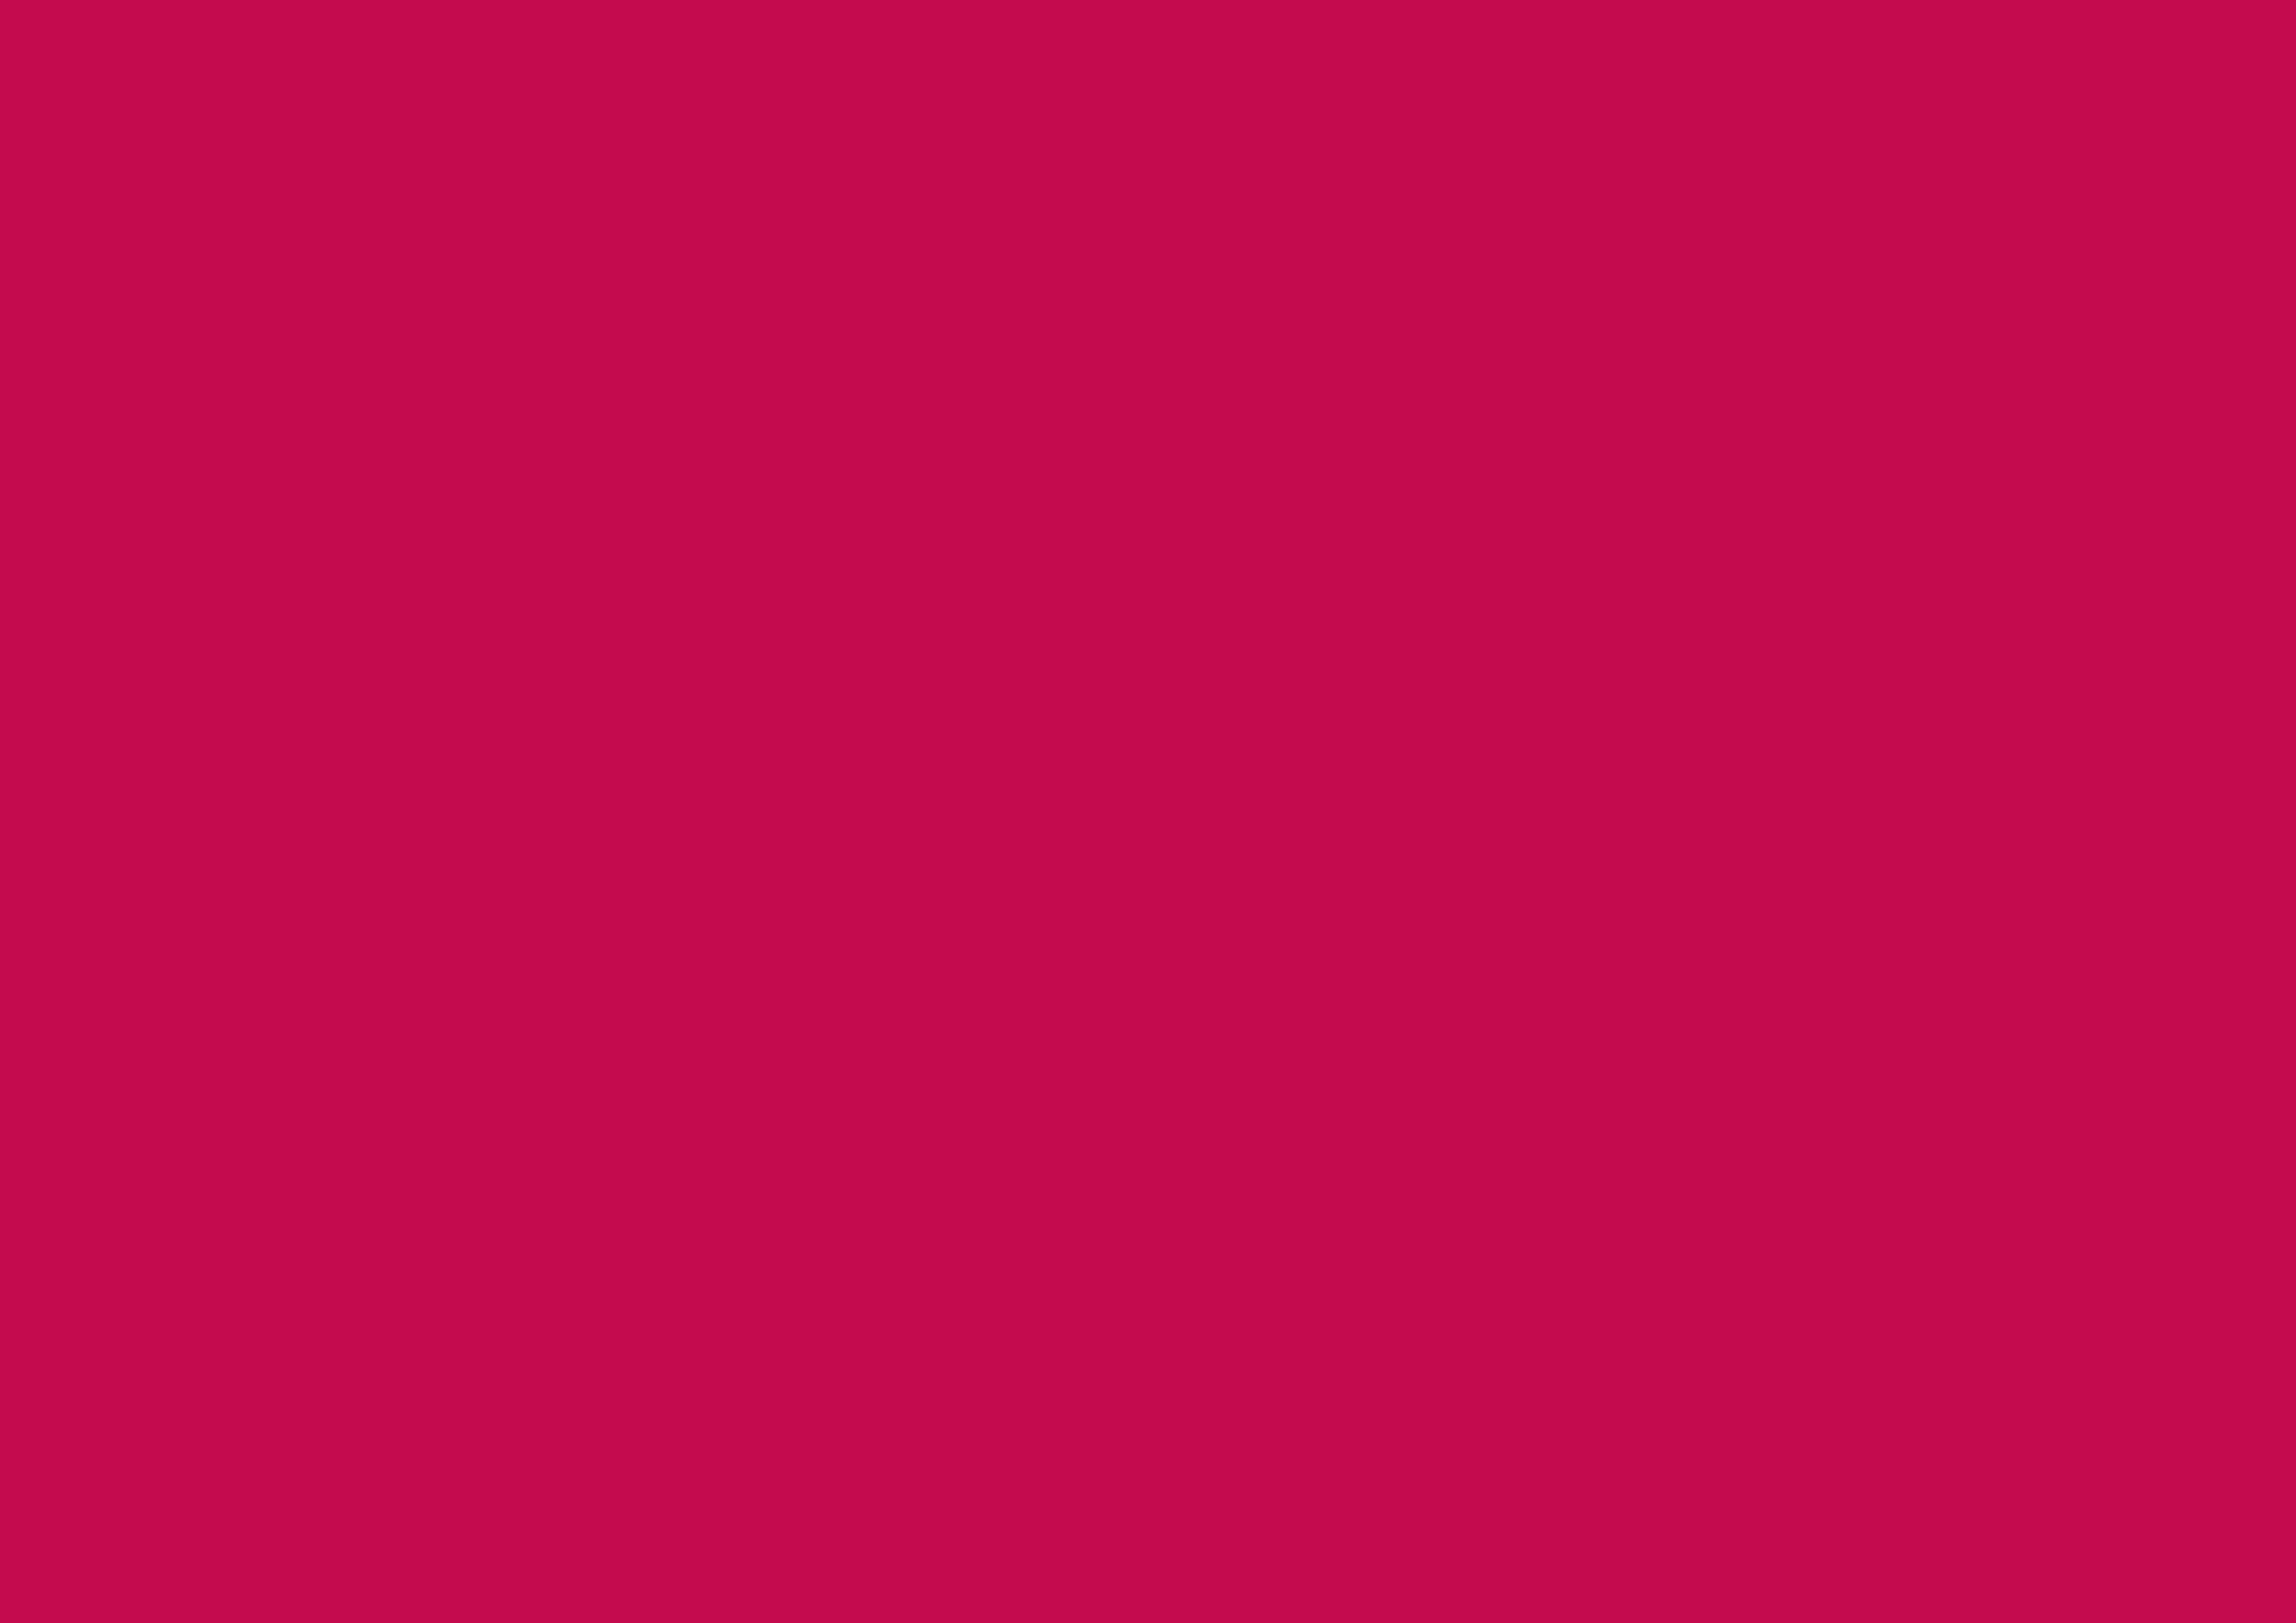 3508x2480 Pictorial Carmine Solid Color Background